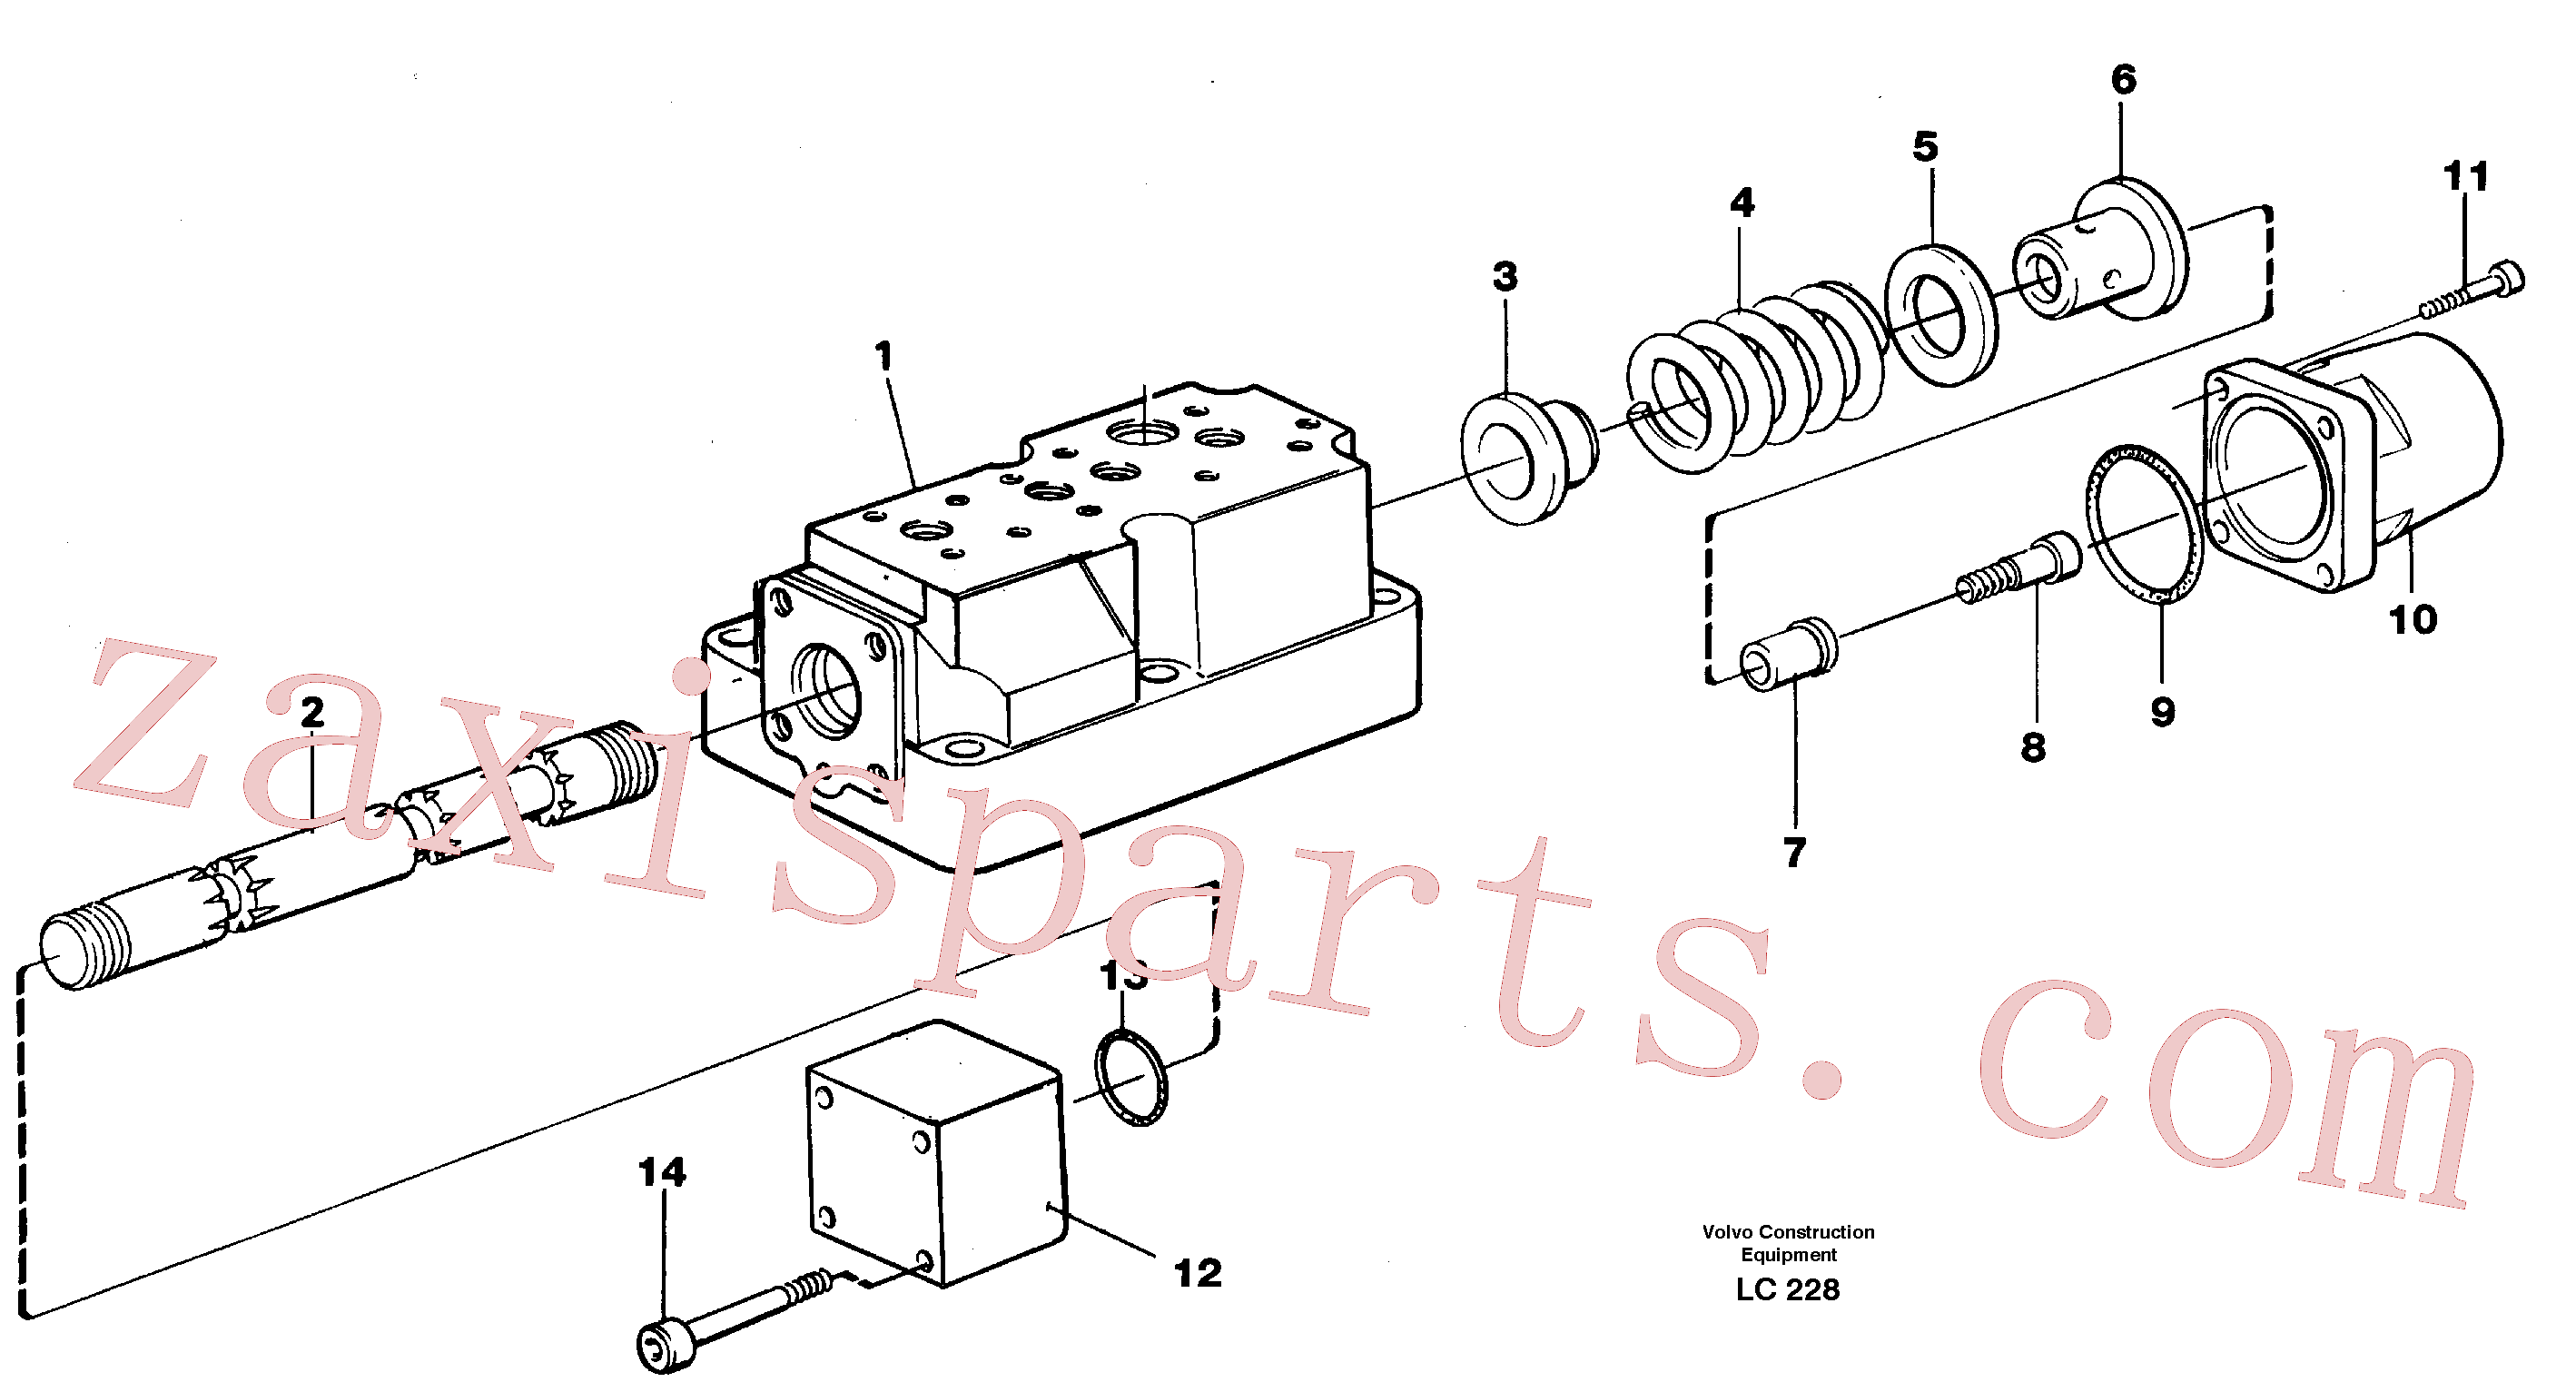 VOE14048555 for Volvo Four-way valve, rotating equipment(LC228 assembly)